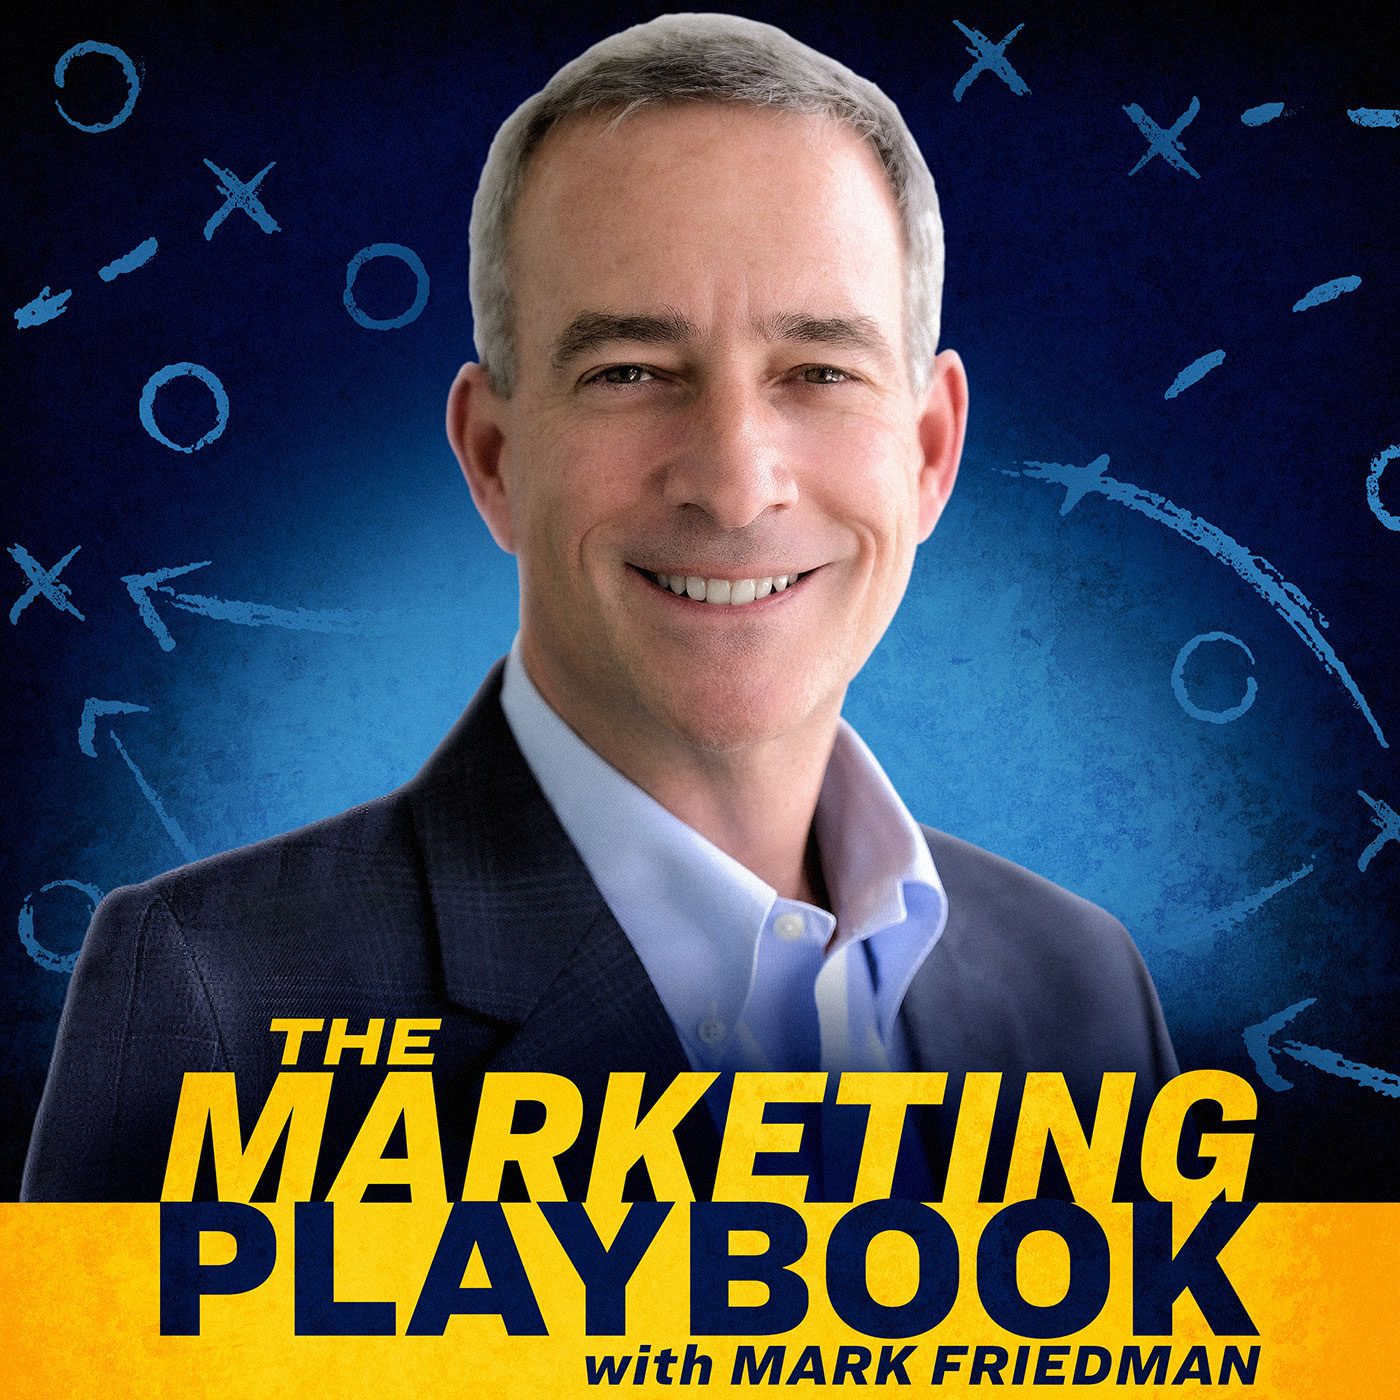 Lucille DeHart on The Marketing Playbook Podcast with Mark Friedman: Senior Marketing and Branding Executive